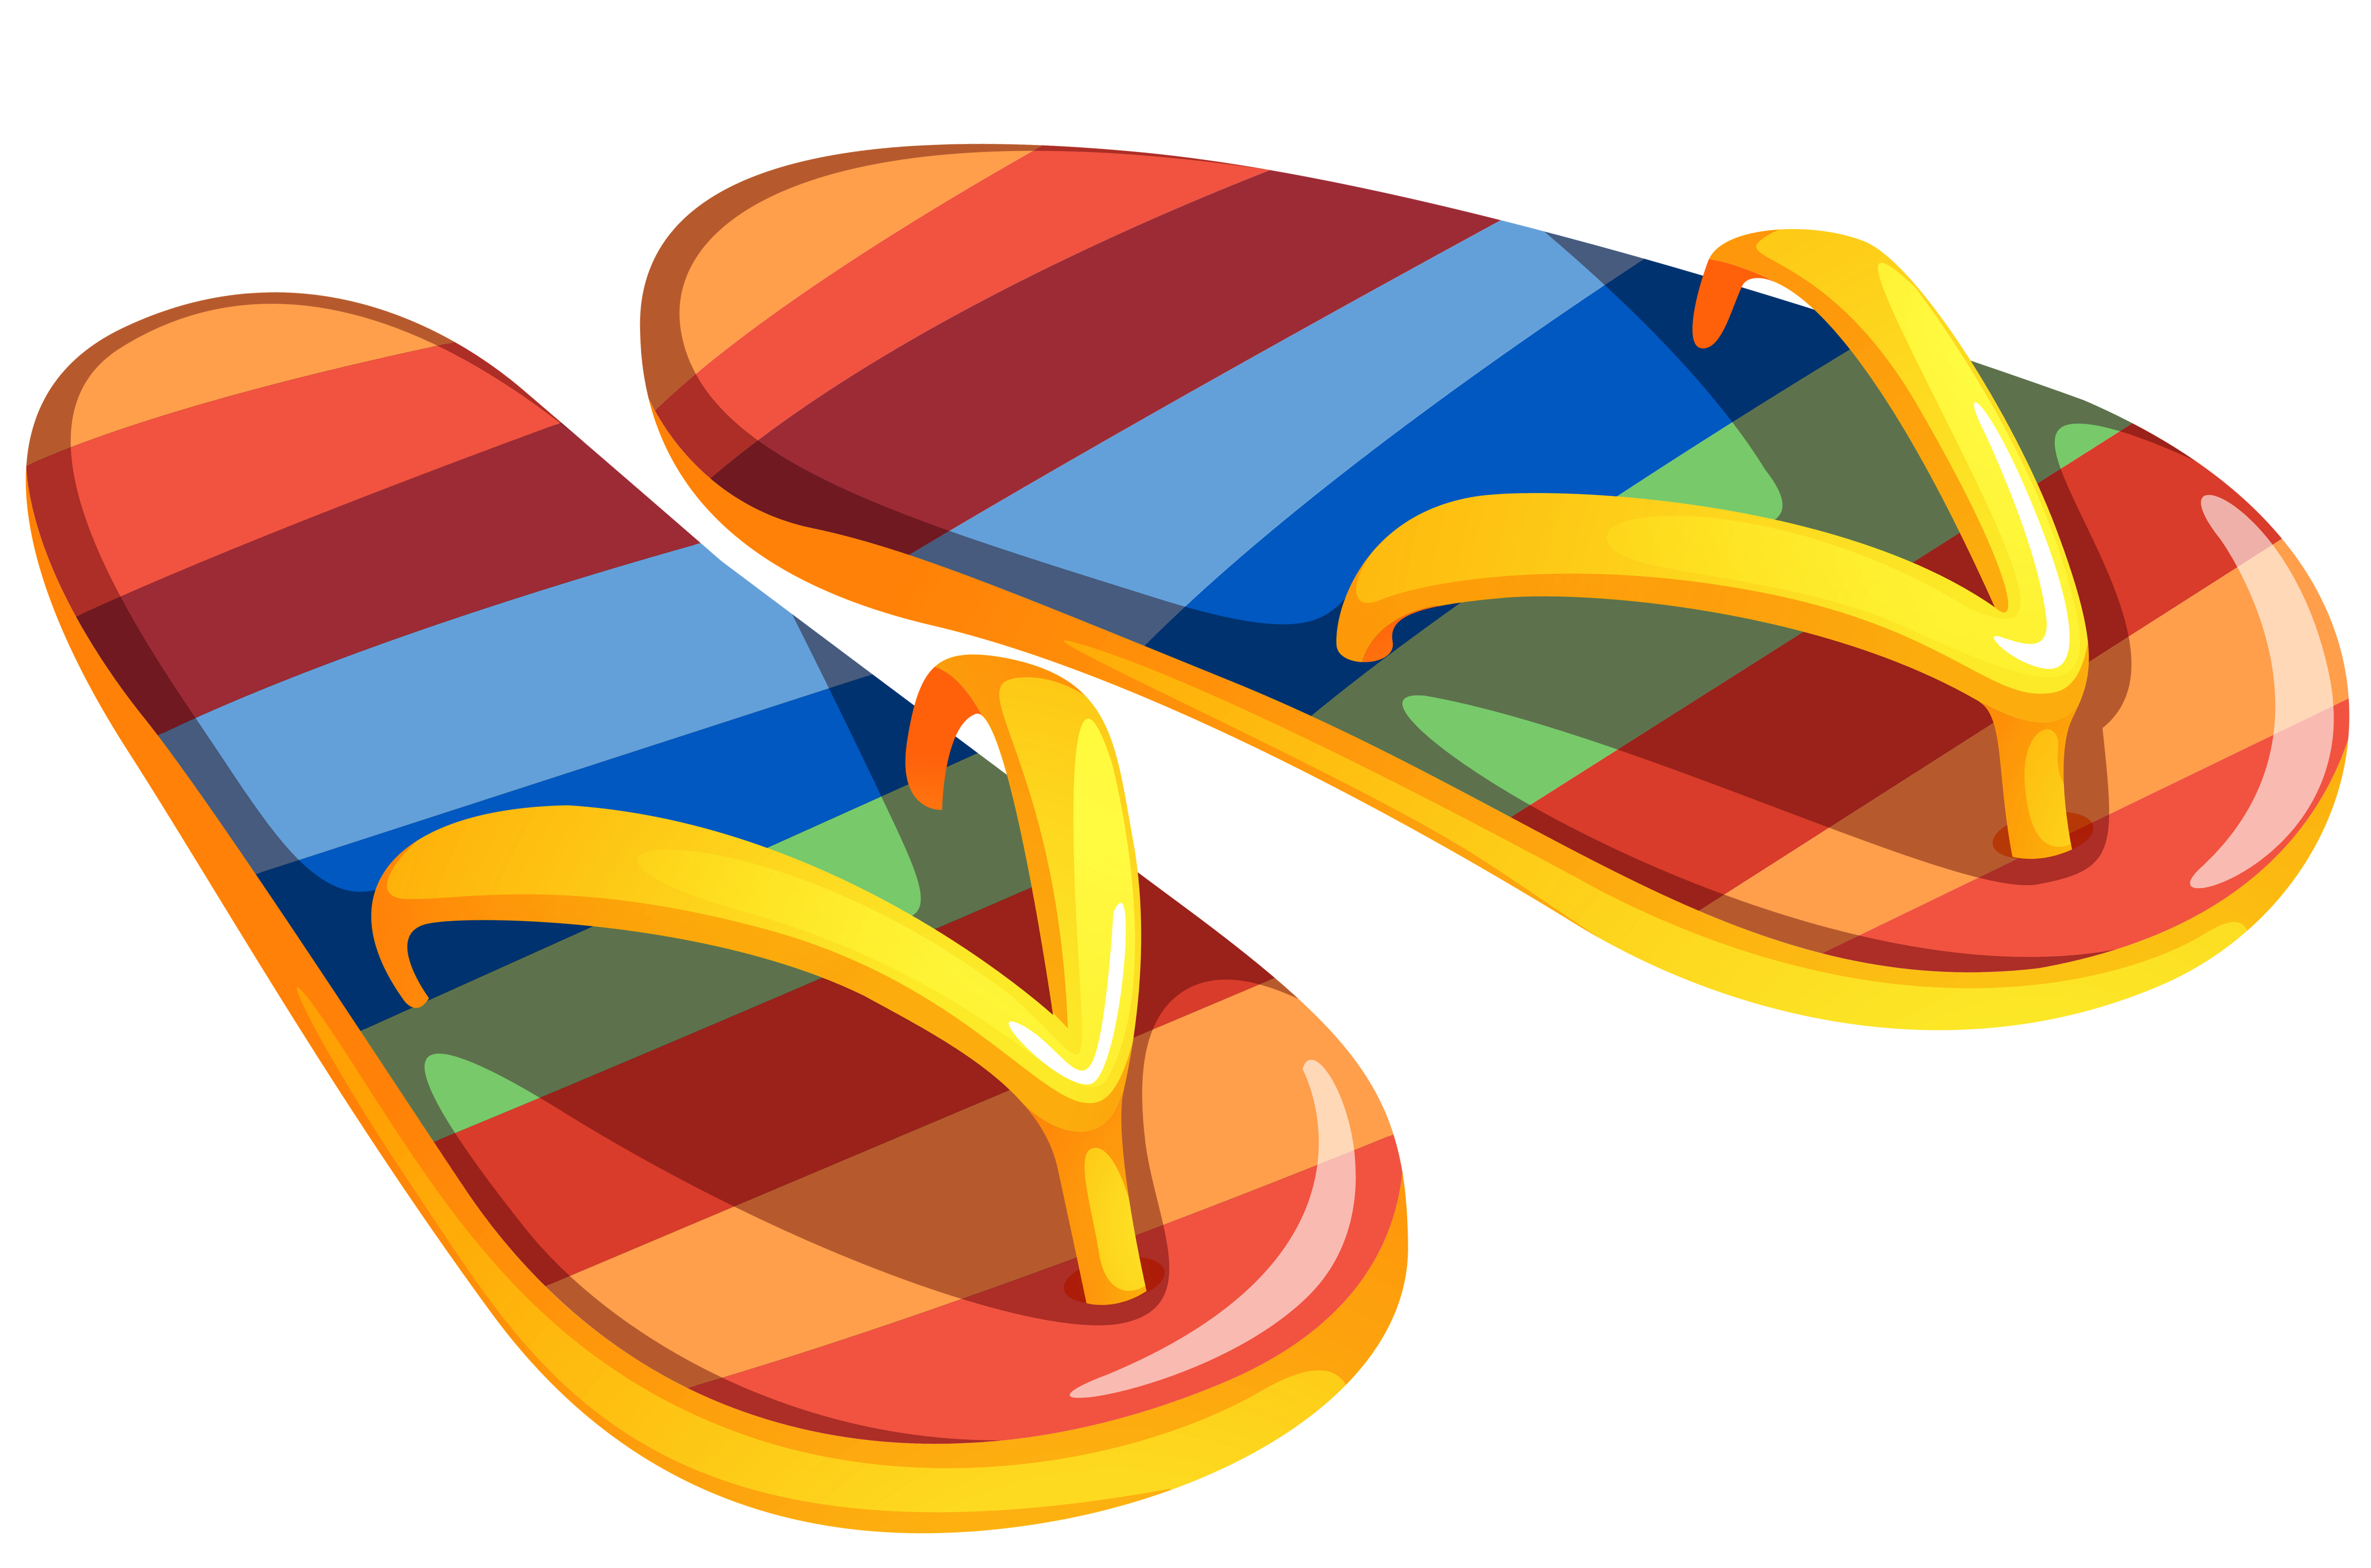 a6beeb8cacb0 4726x3126 Transparent Beach Flip Flops Png Clipartu200b Gallery Yopriceville